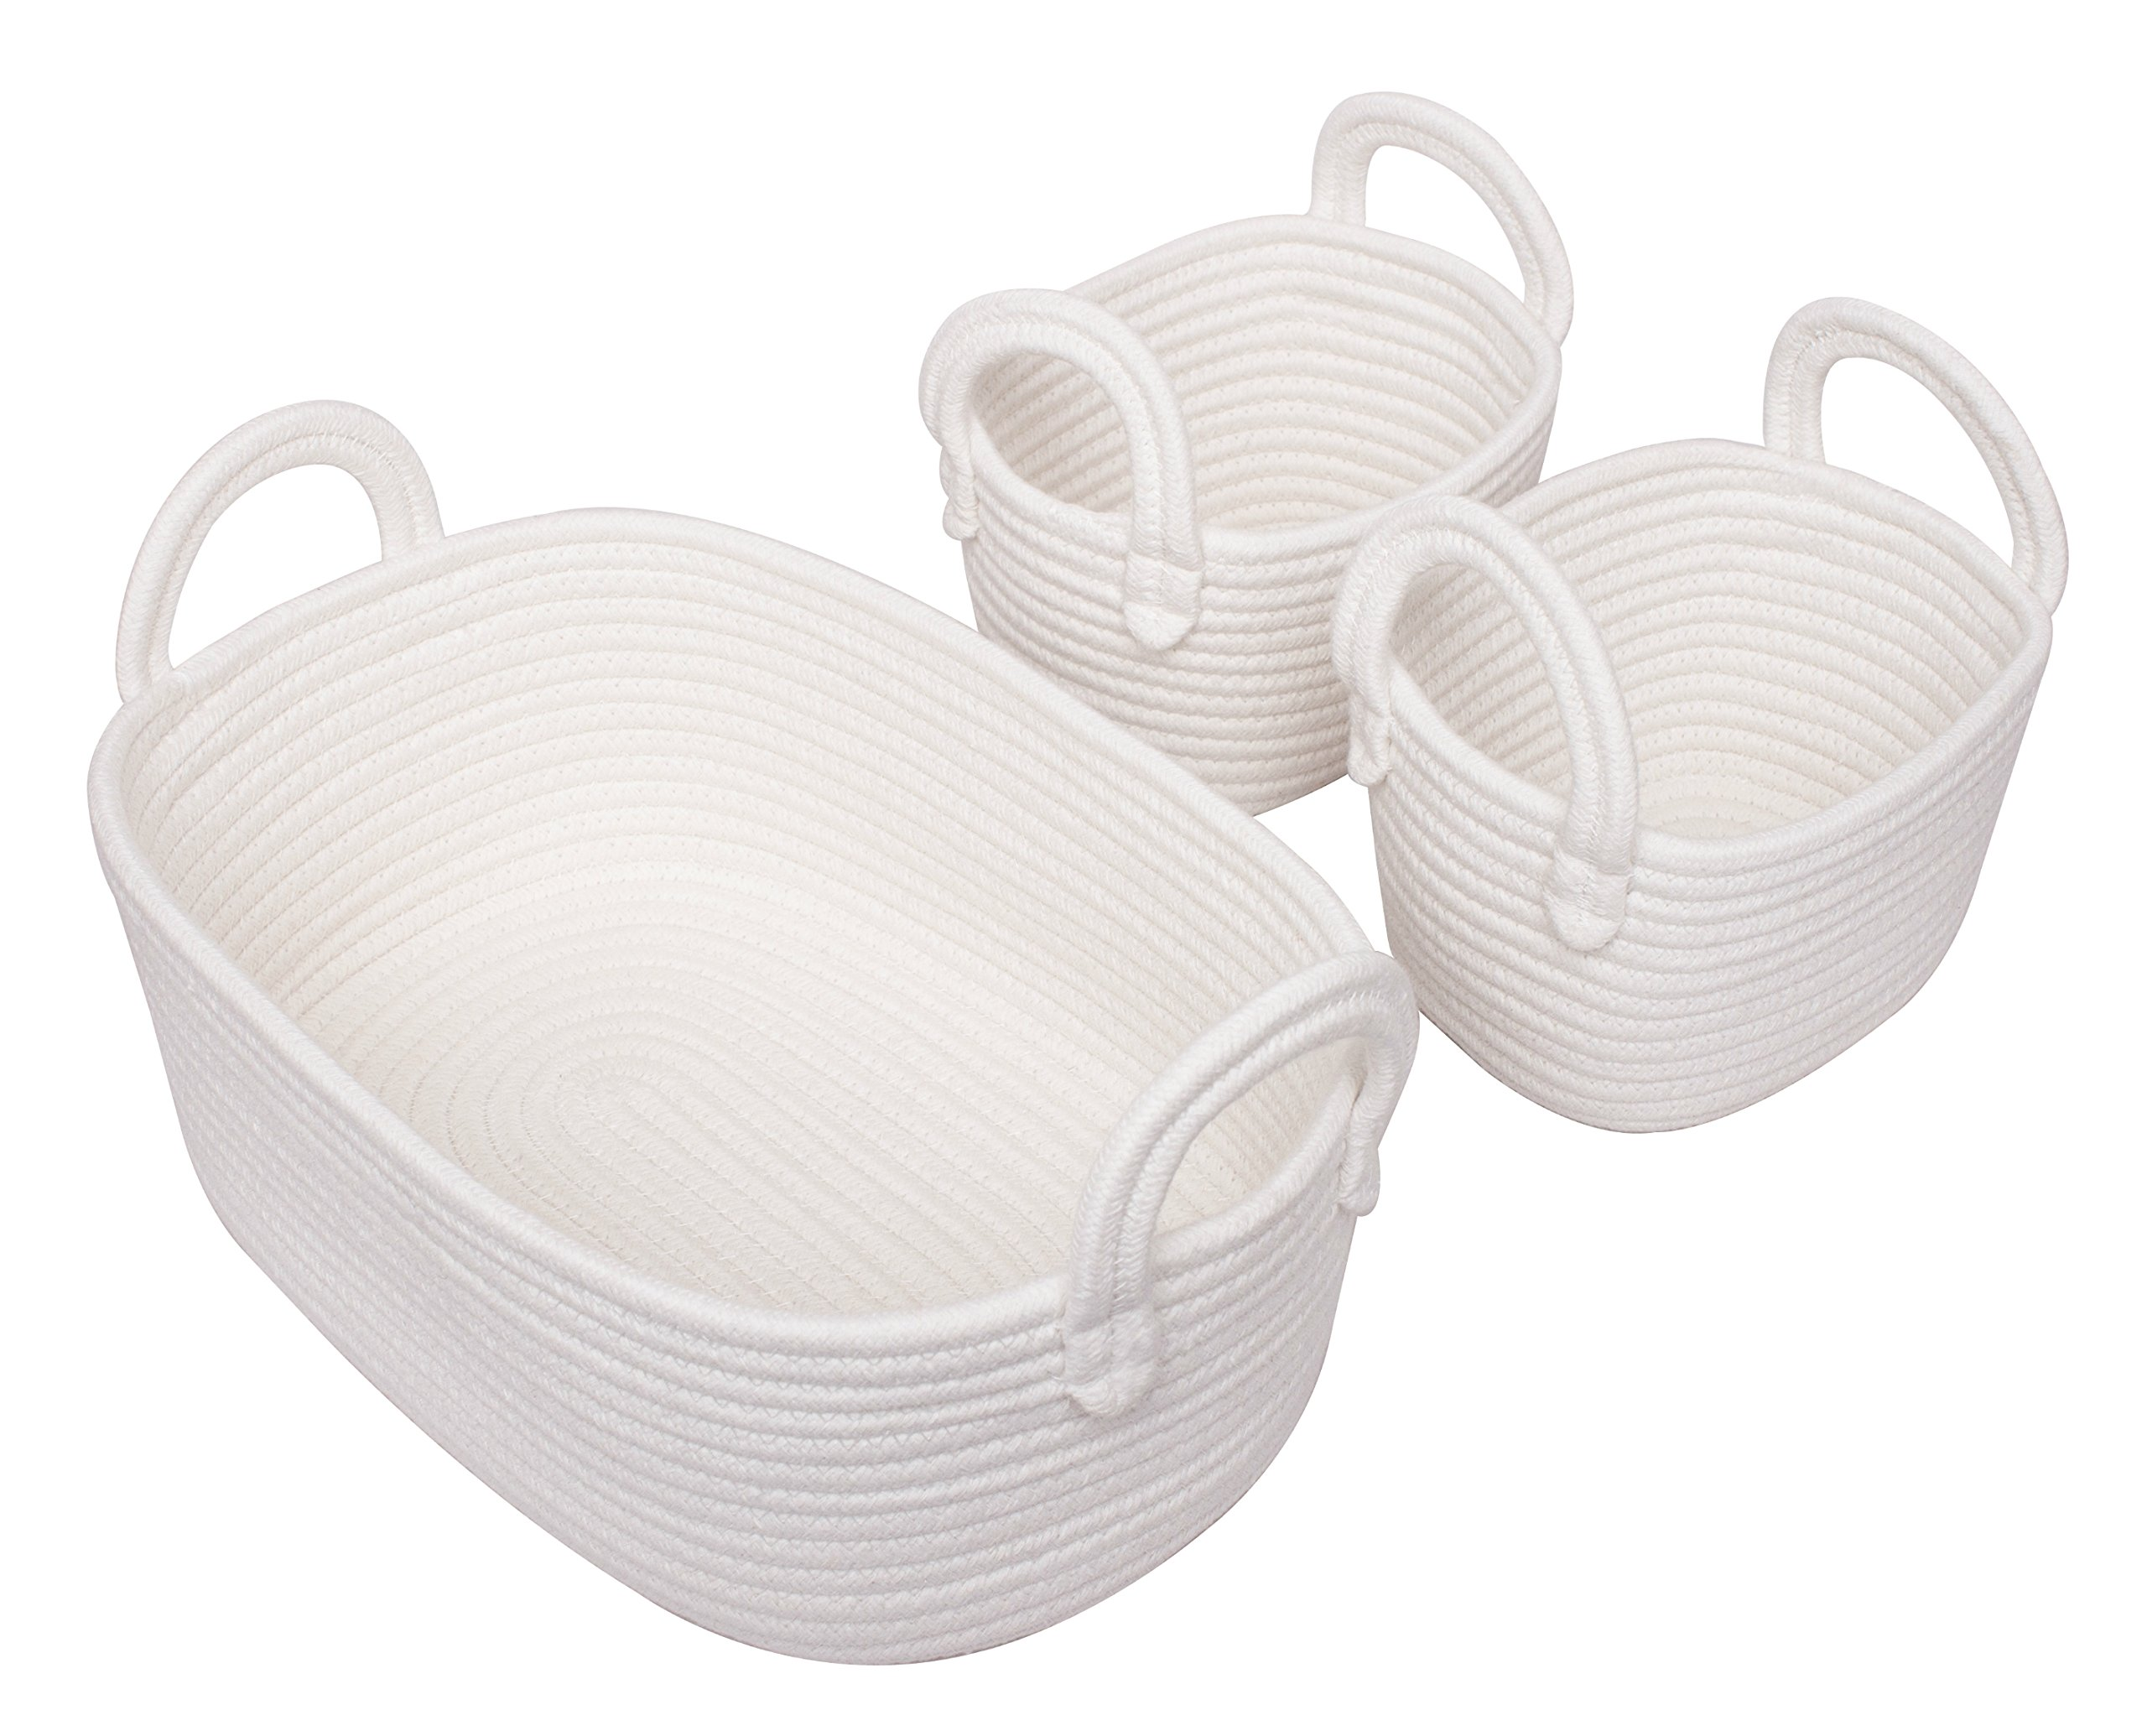 Cotton Rope Storage Baskets, Set Of 3 Toy Organizer For Woven Nursery  Decor, Gift